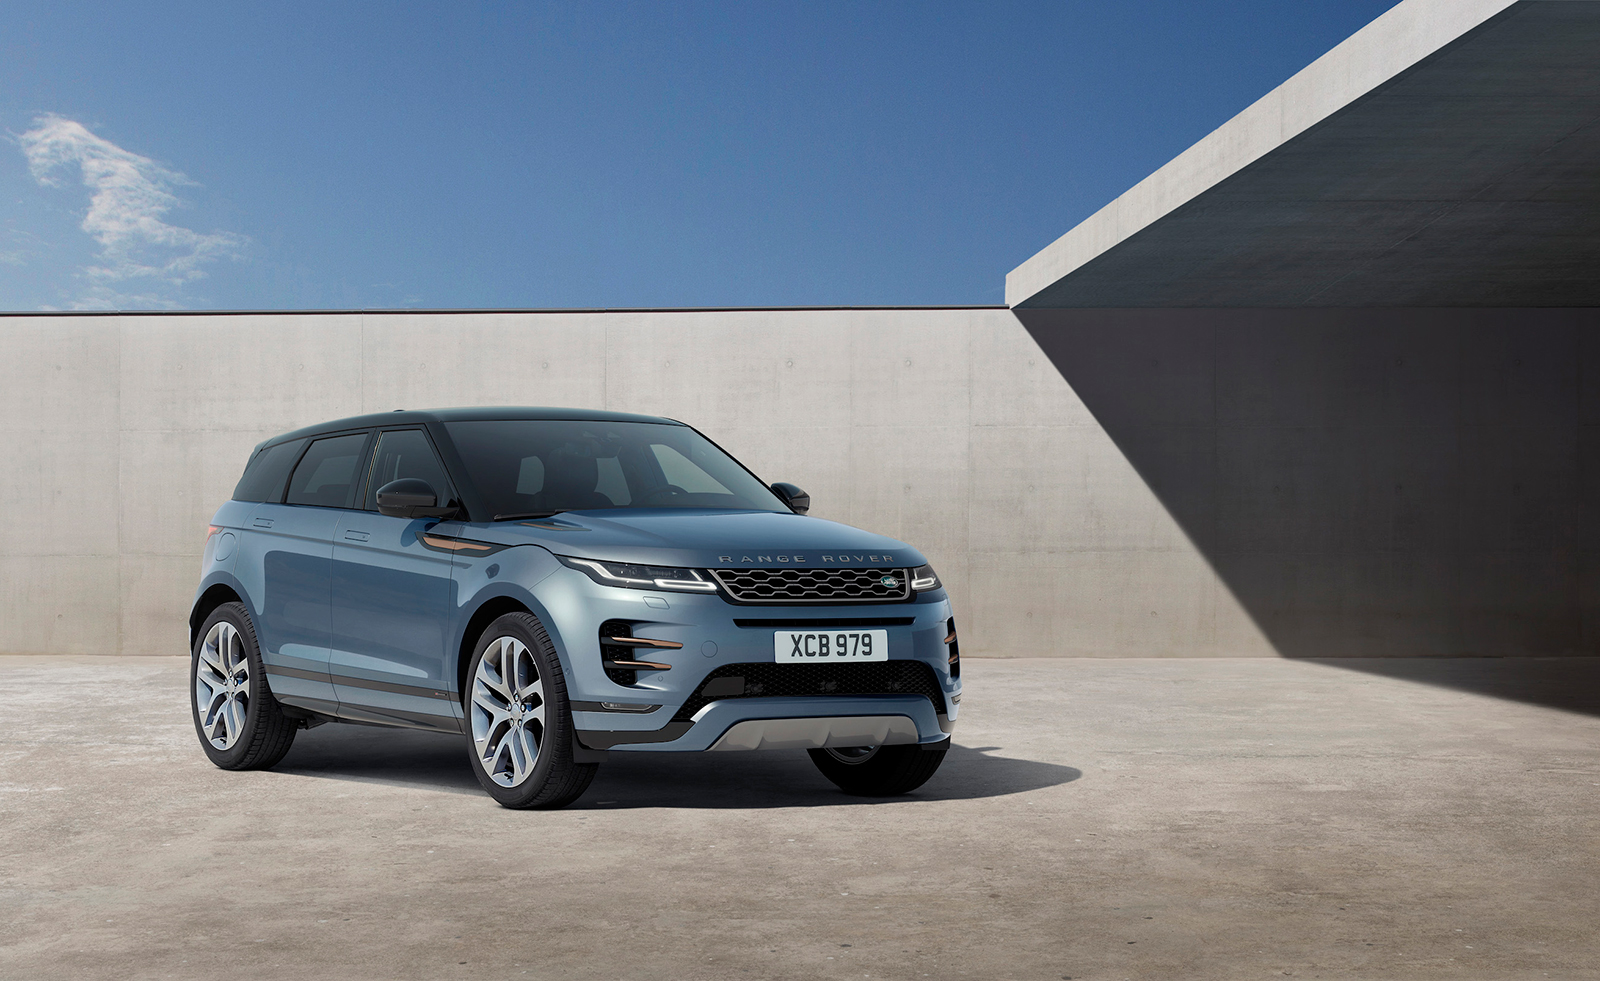 Range Rover Evoque 2019 design review Wallpaper 1600x981